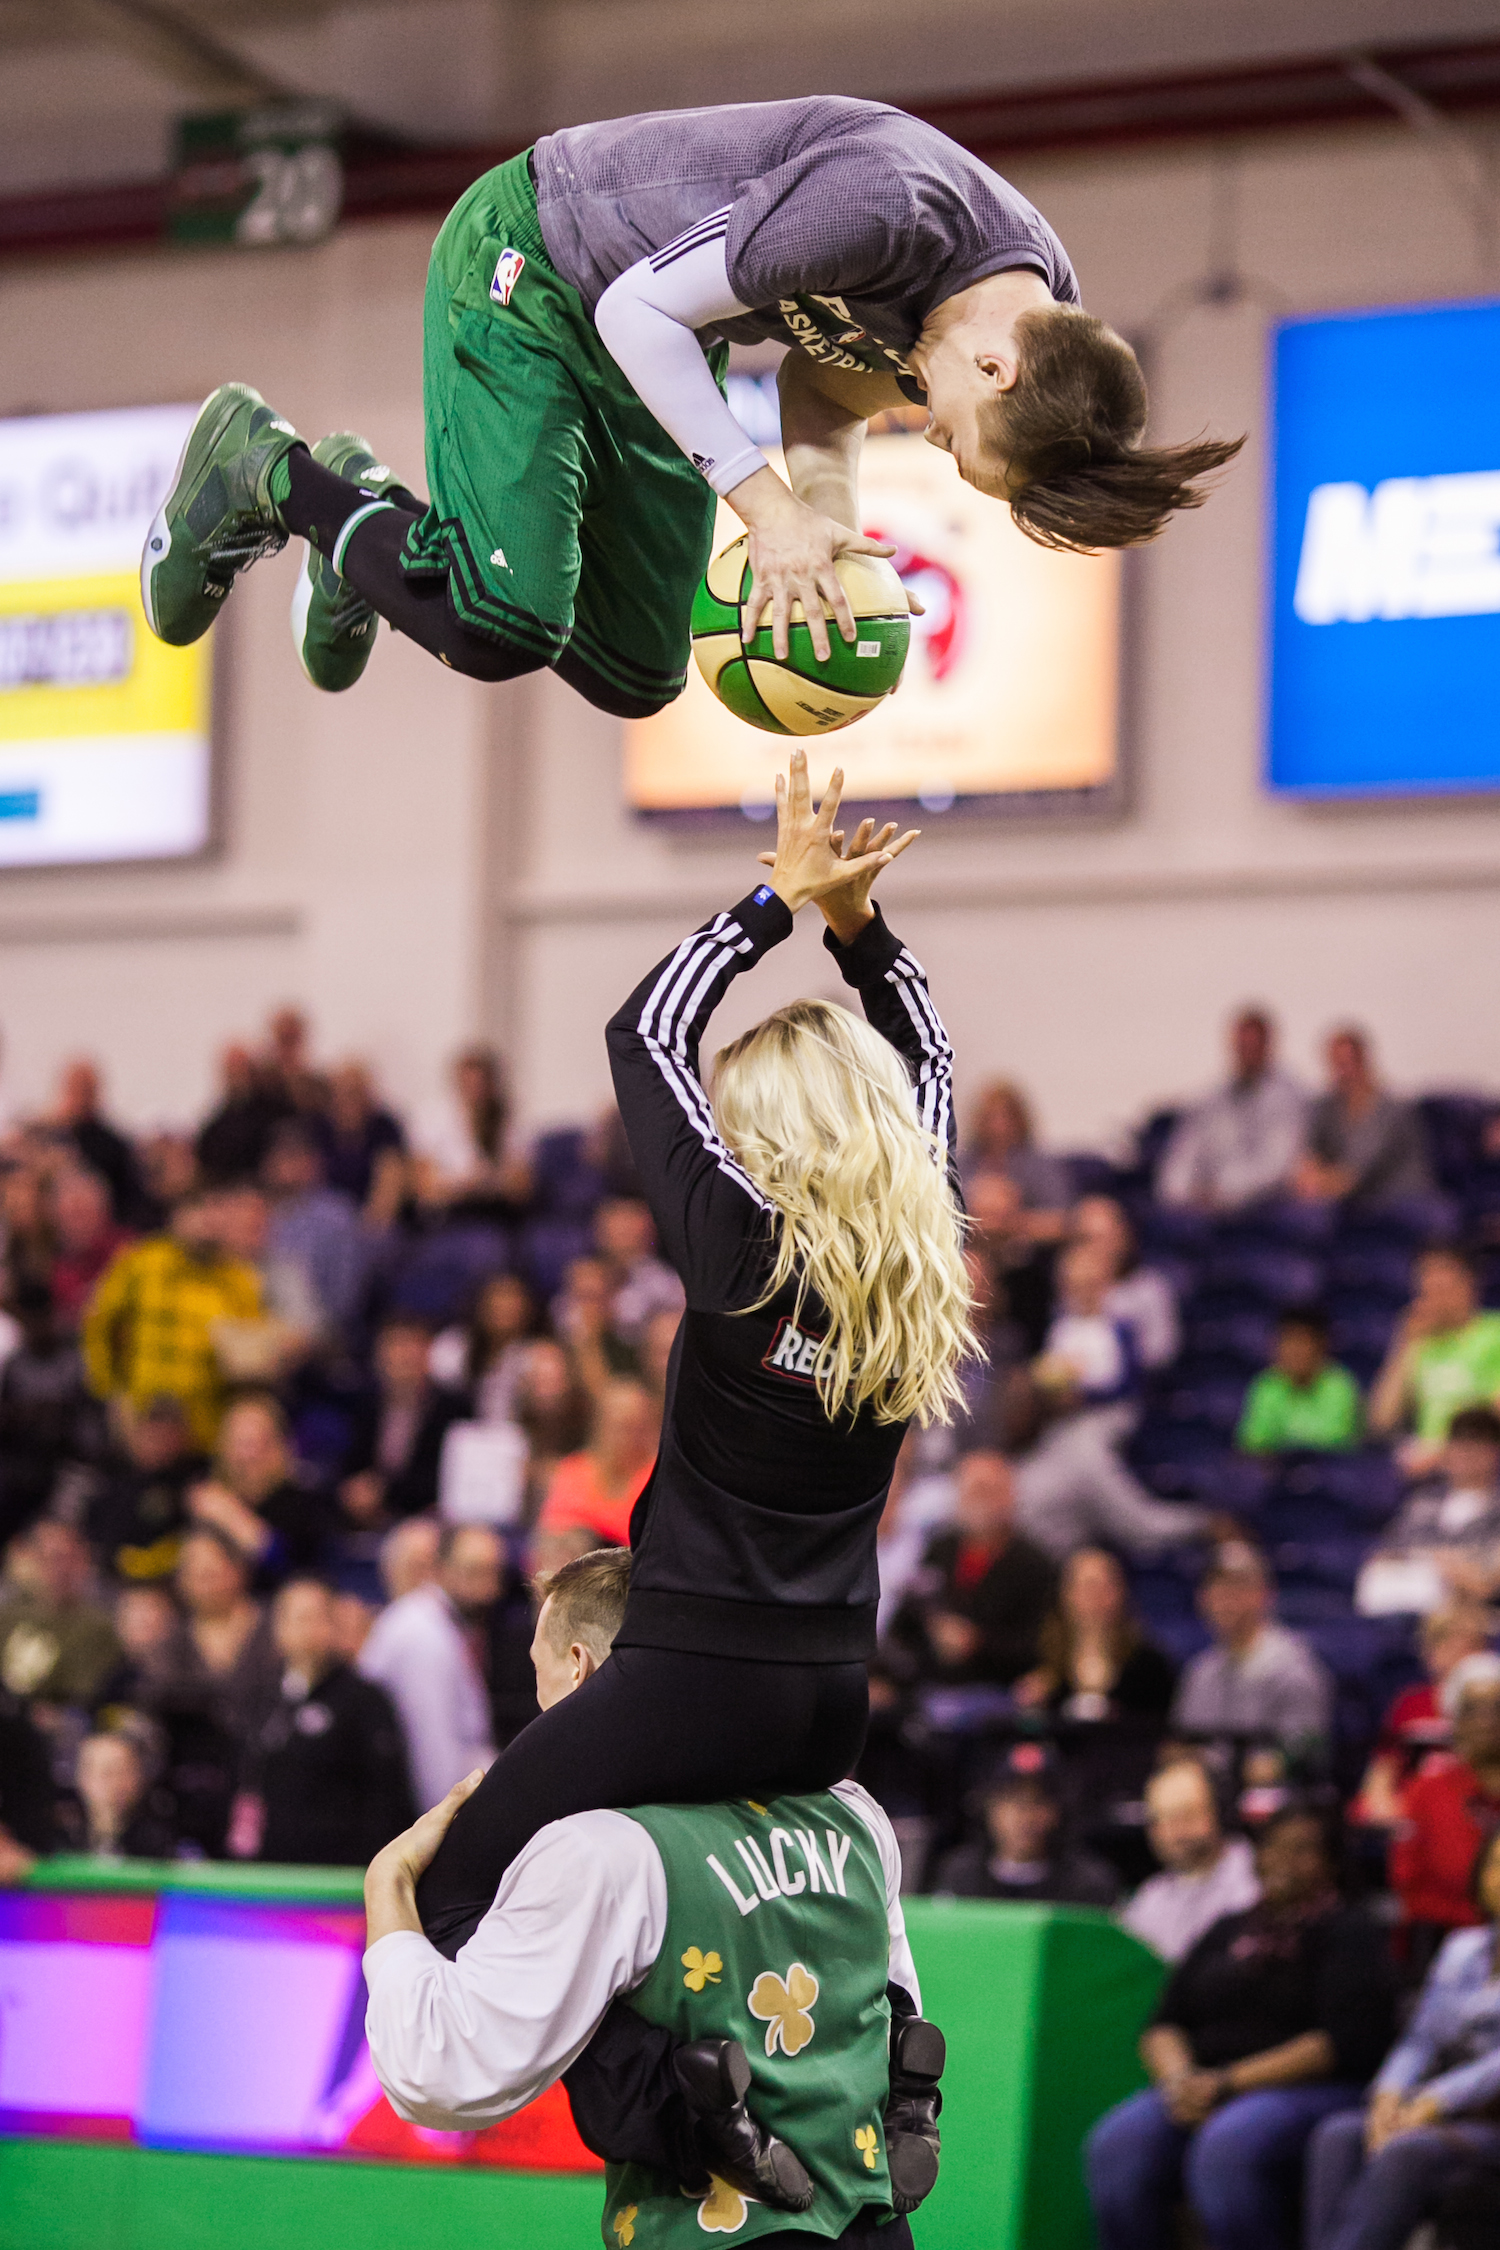 A gravity-defying half-time performance at the Red Claws game against the Delaware 87ers at the Portland Expo,Thursday, March 31, 2016.